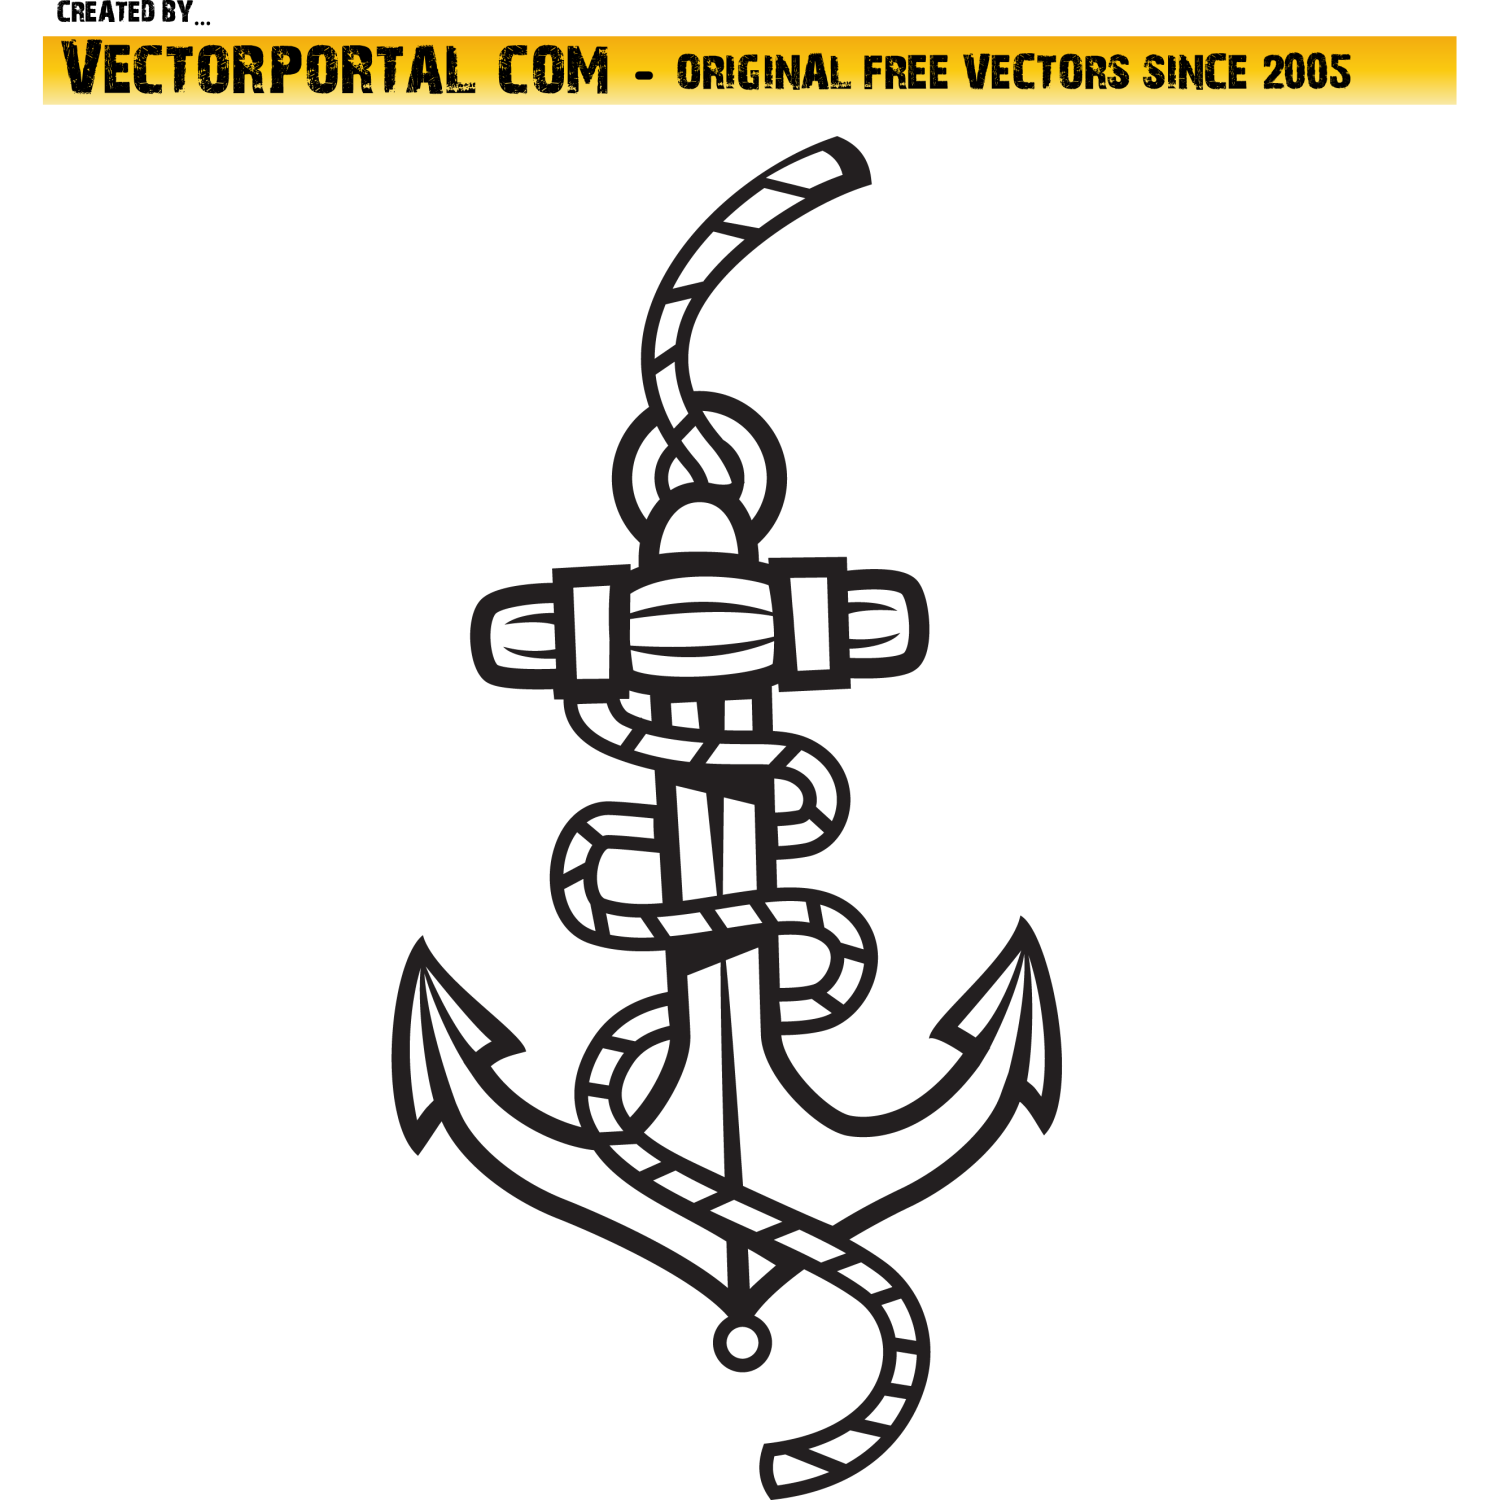 Anchor and rope vector image.